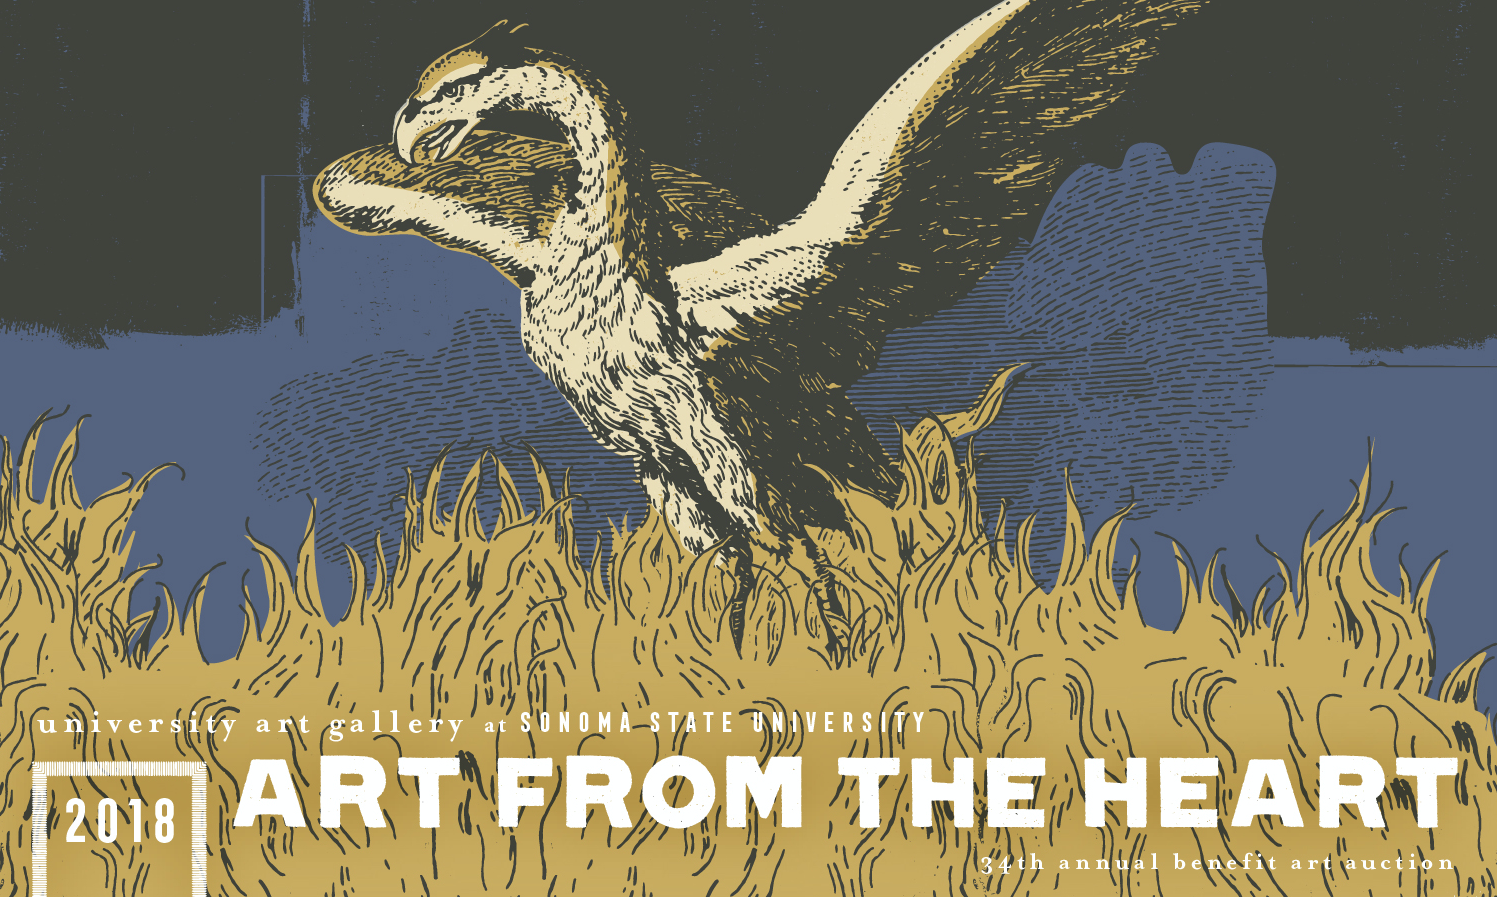 SSU Art from the Heart 2018 by Justine Mendoza and Designed by Monkeys